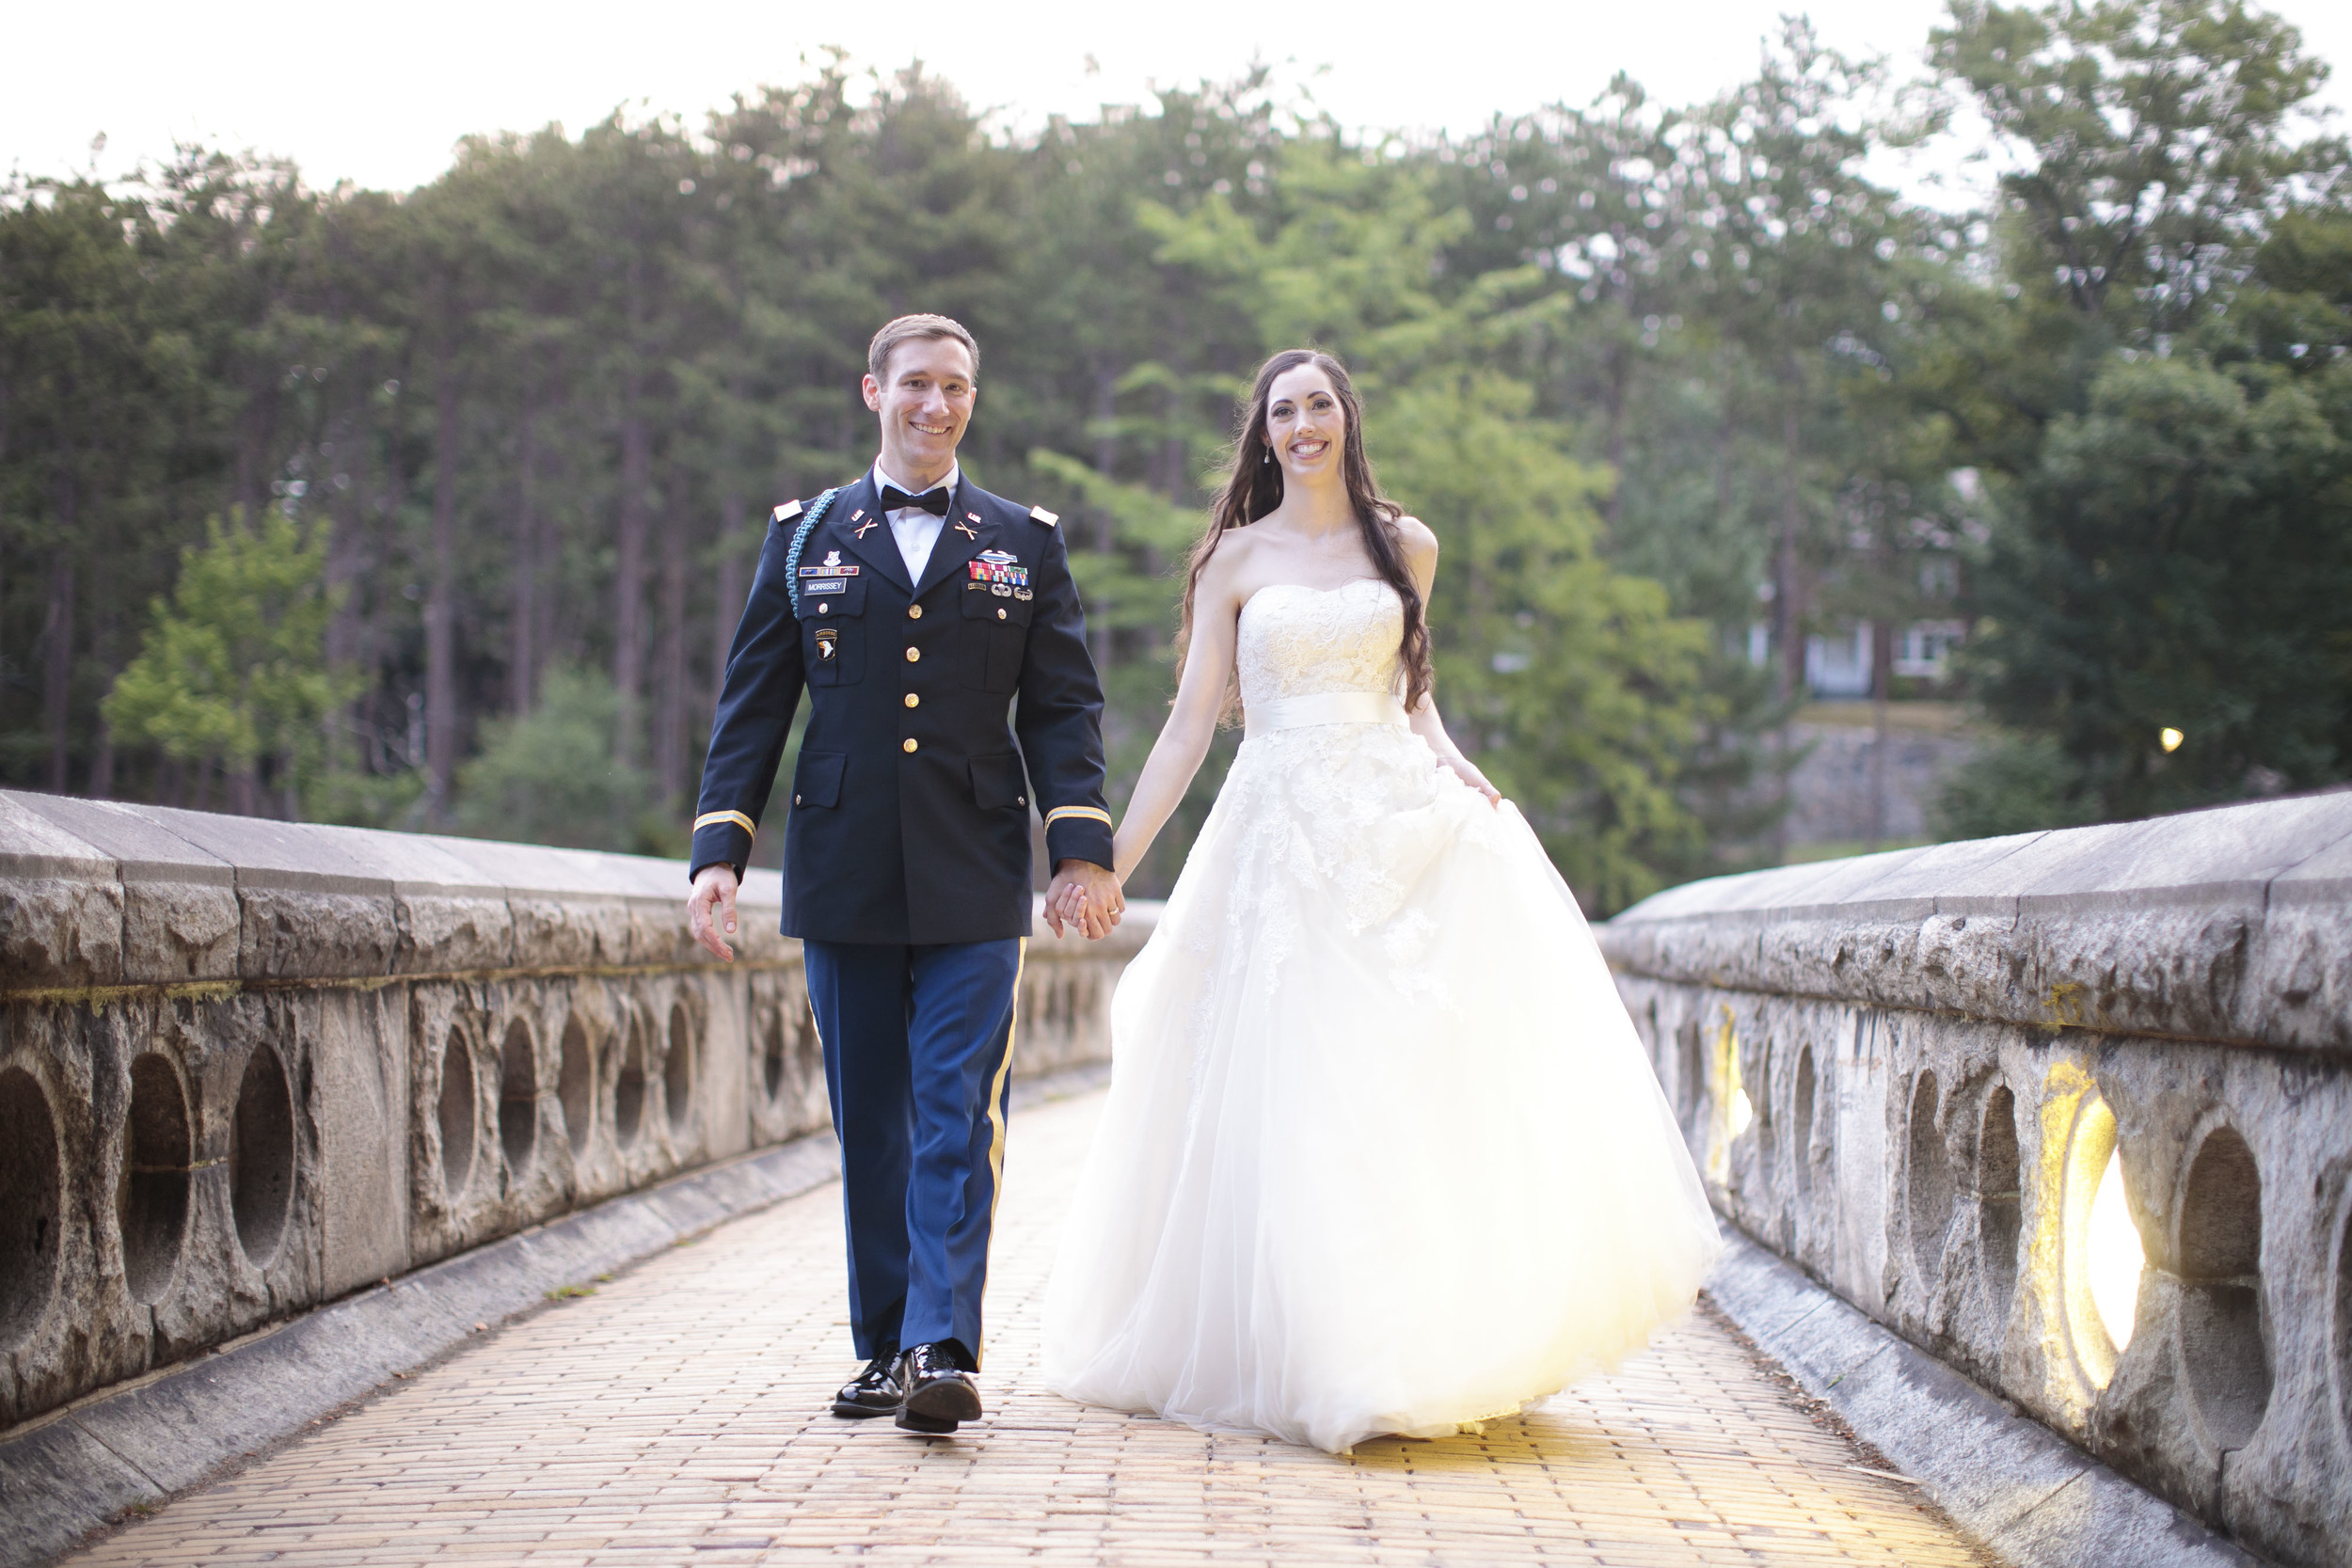 West_Point_Wedding_Photographer_NY_3050.JPG